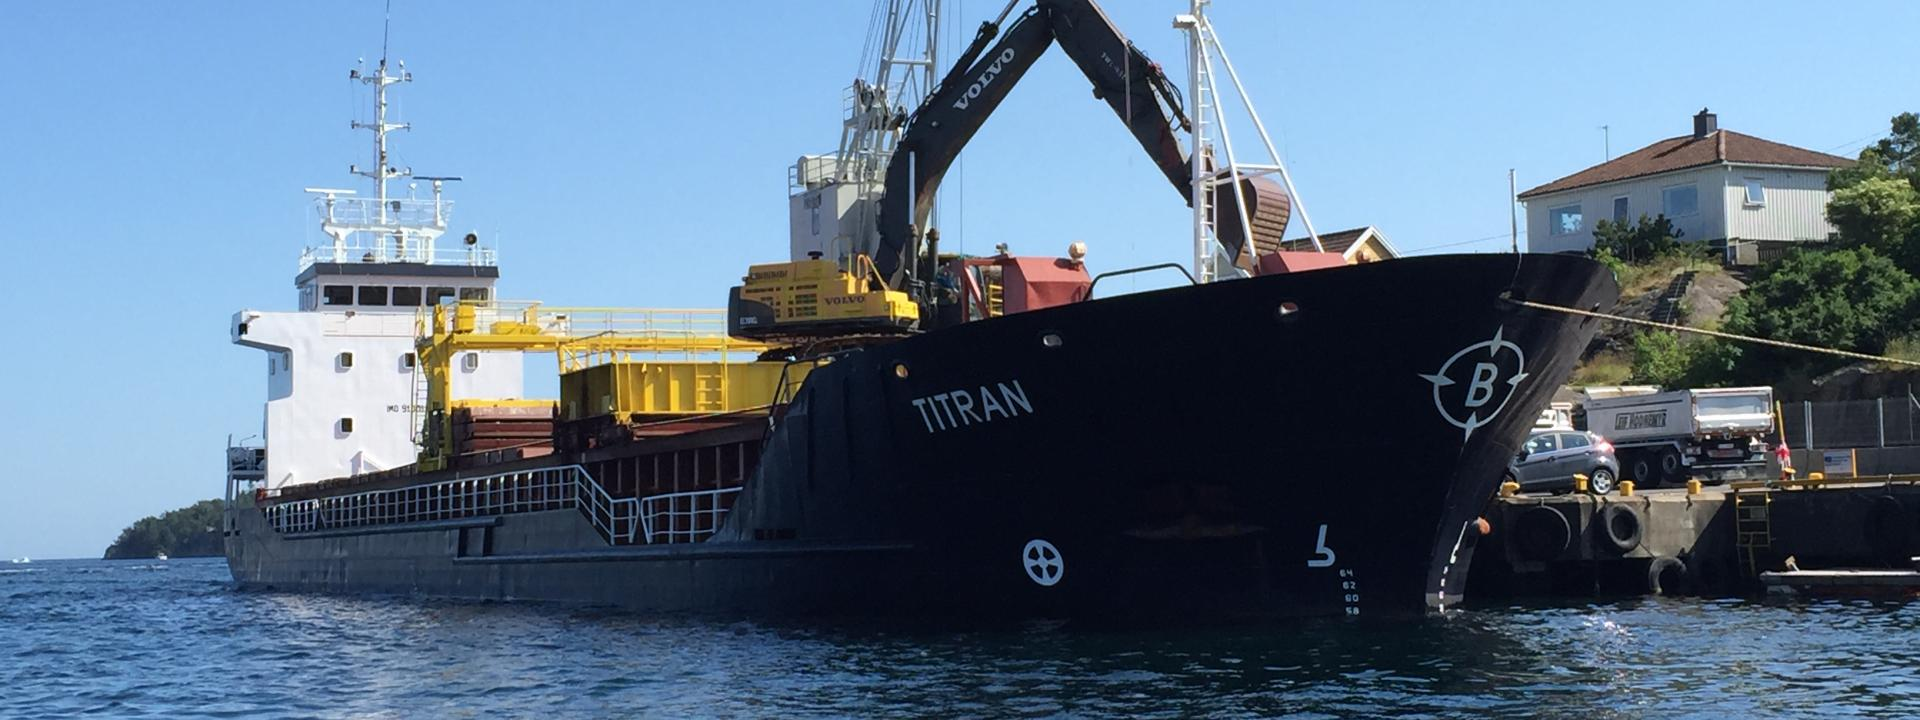 MS Titran discharge in Lillesand.